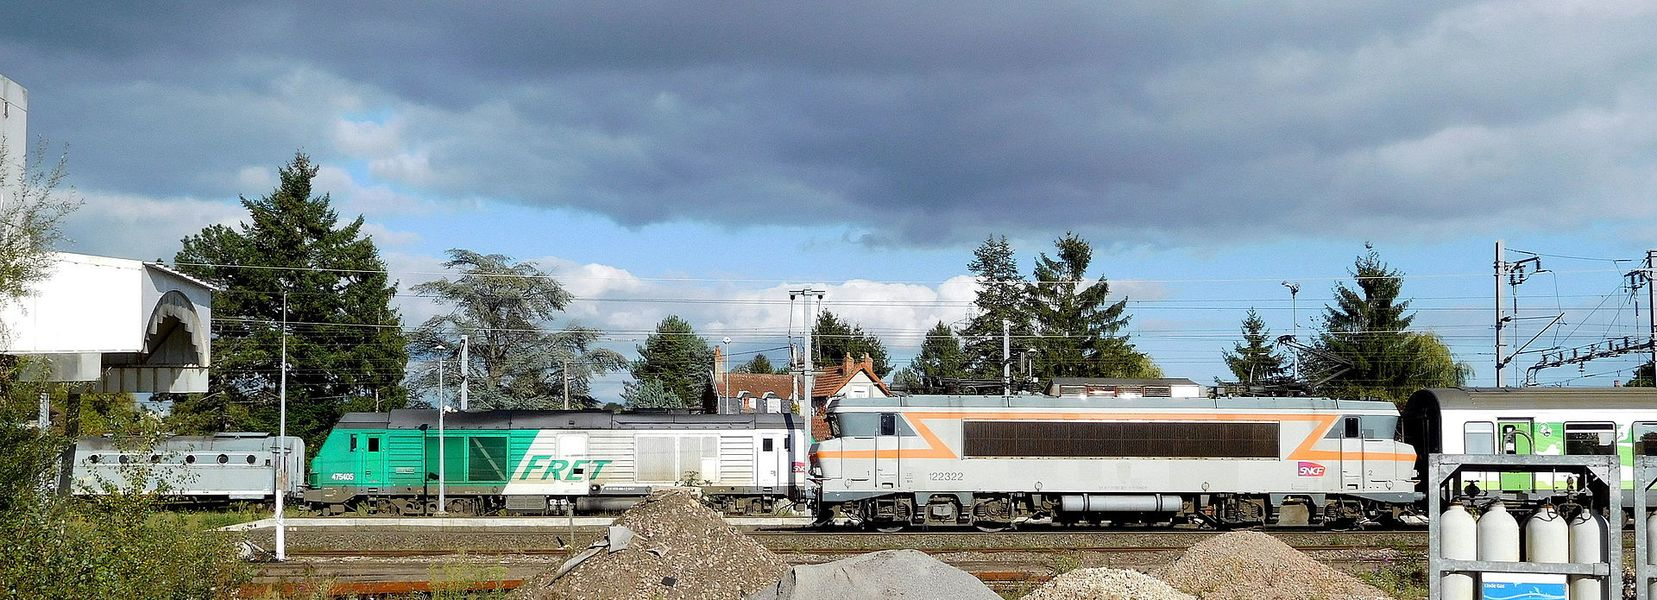 French rail vehicles on three different tracks (left to right):   preserved SNCF C 886 boiler van (at rest on a depot);  SNCF BB 475405 diesel electric locomotive (for freight, at rest on a canton) and wagons (not visible);  SNCF BB 122322 electric locomotive (just left the station of Cosne-sur-Loire, goes to Paris) and passenger cars (only one visible).